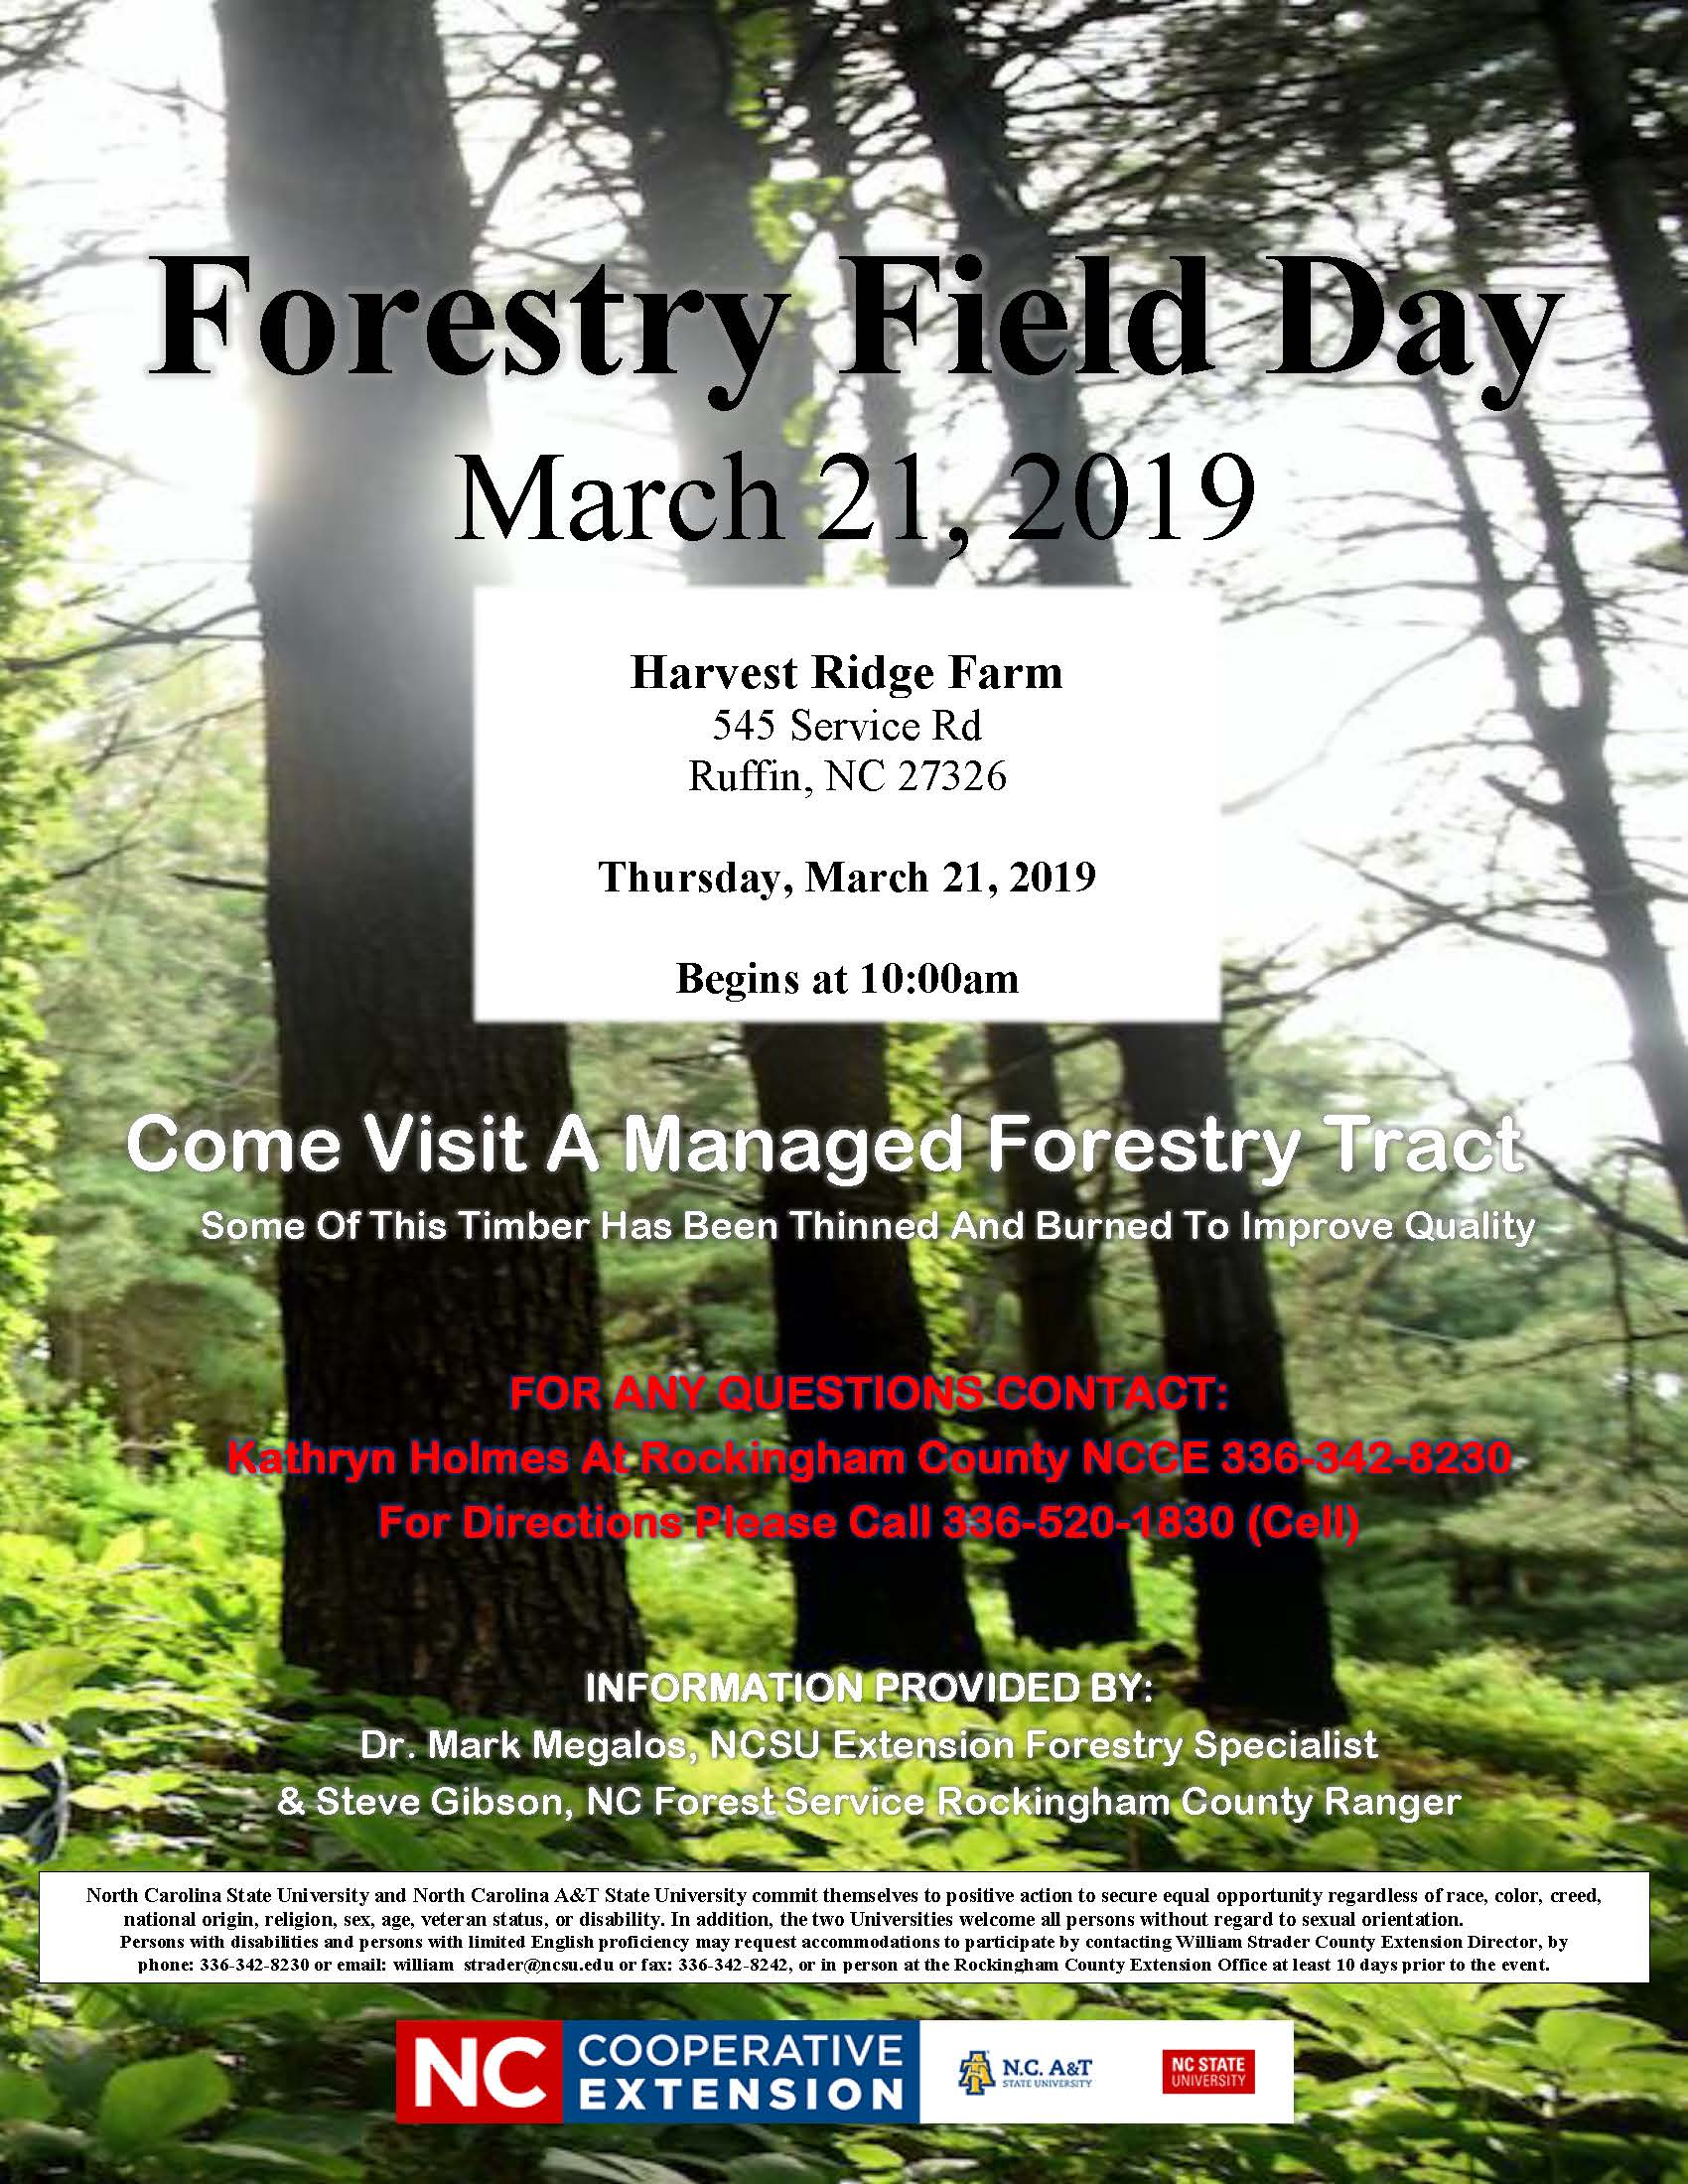 Forestry Field Day flyer image